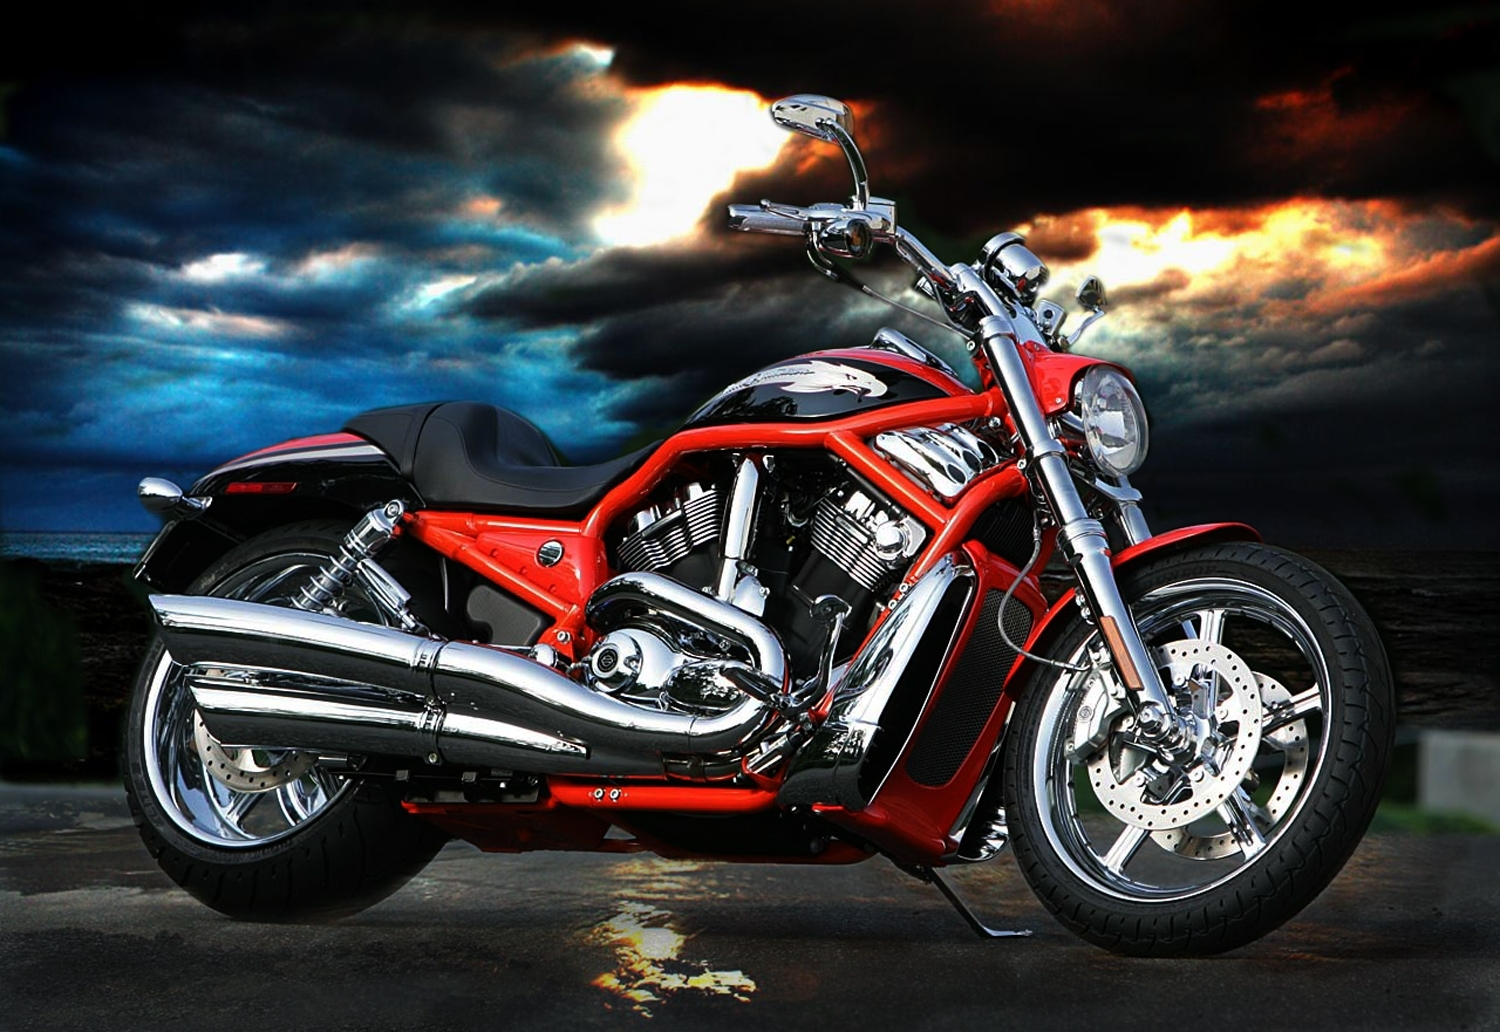 Harley-Davidson images Harley Davidson HD wallpaper and background ...